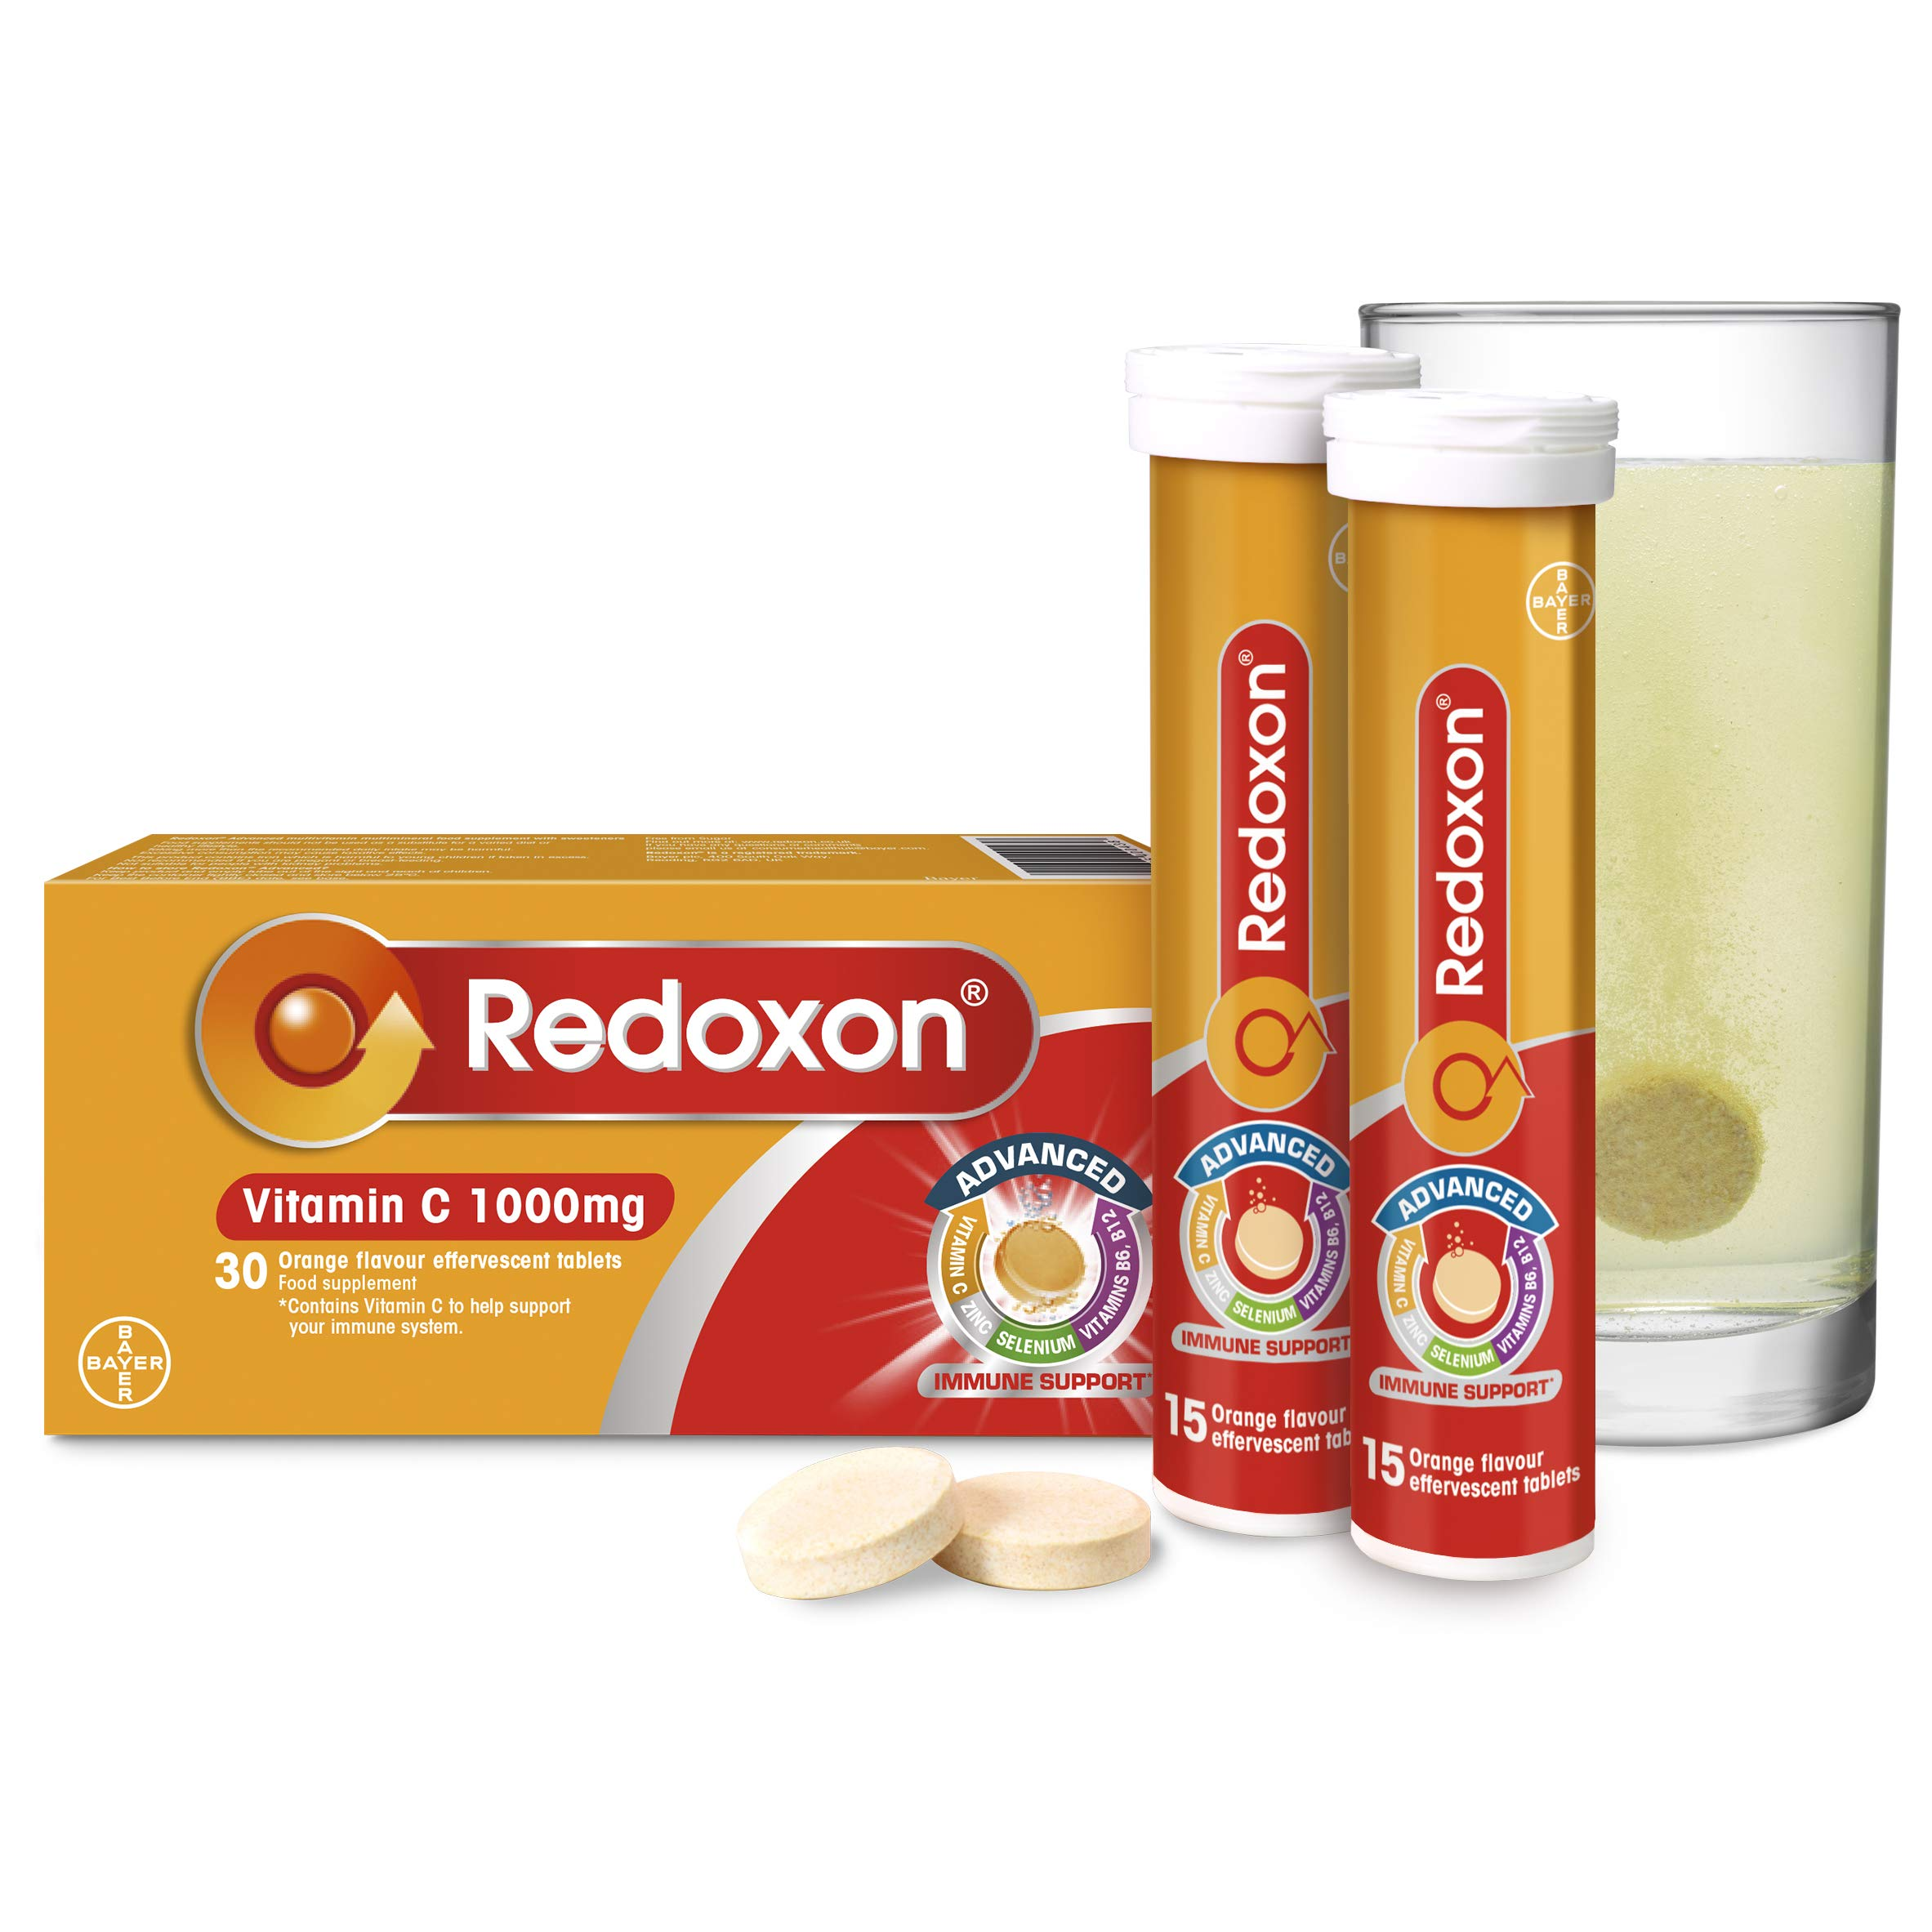 Redoxon Advanced Vitamin C 1000mg Tablets, Multivitamin Immune Booster, Orange Flavour, 1 Pack of 30 Tablets - 1 Months Supply